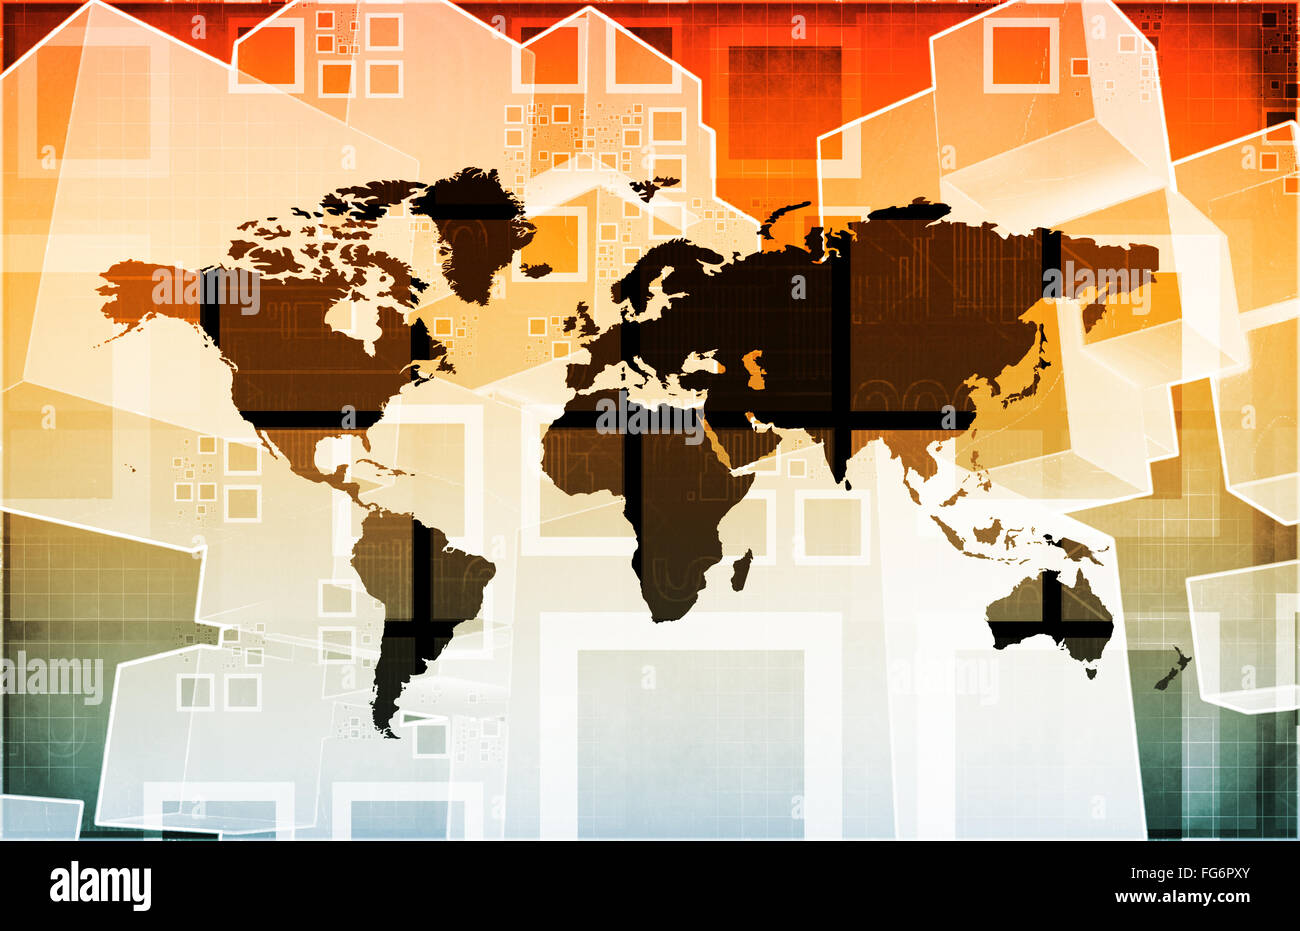 Emerging Market and International Global Businesses Art Stock Photo